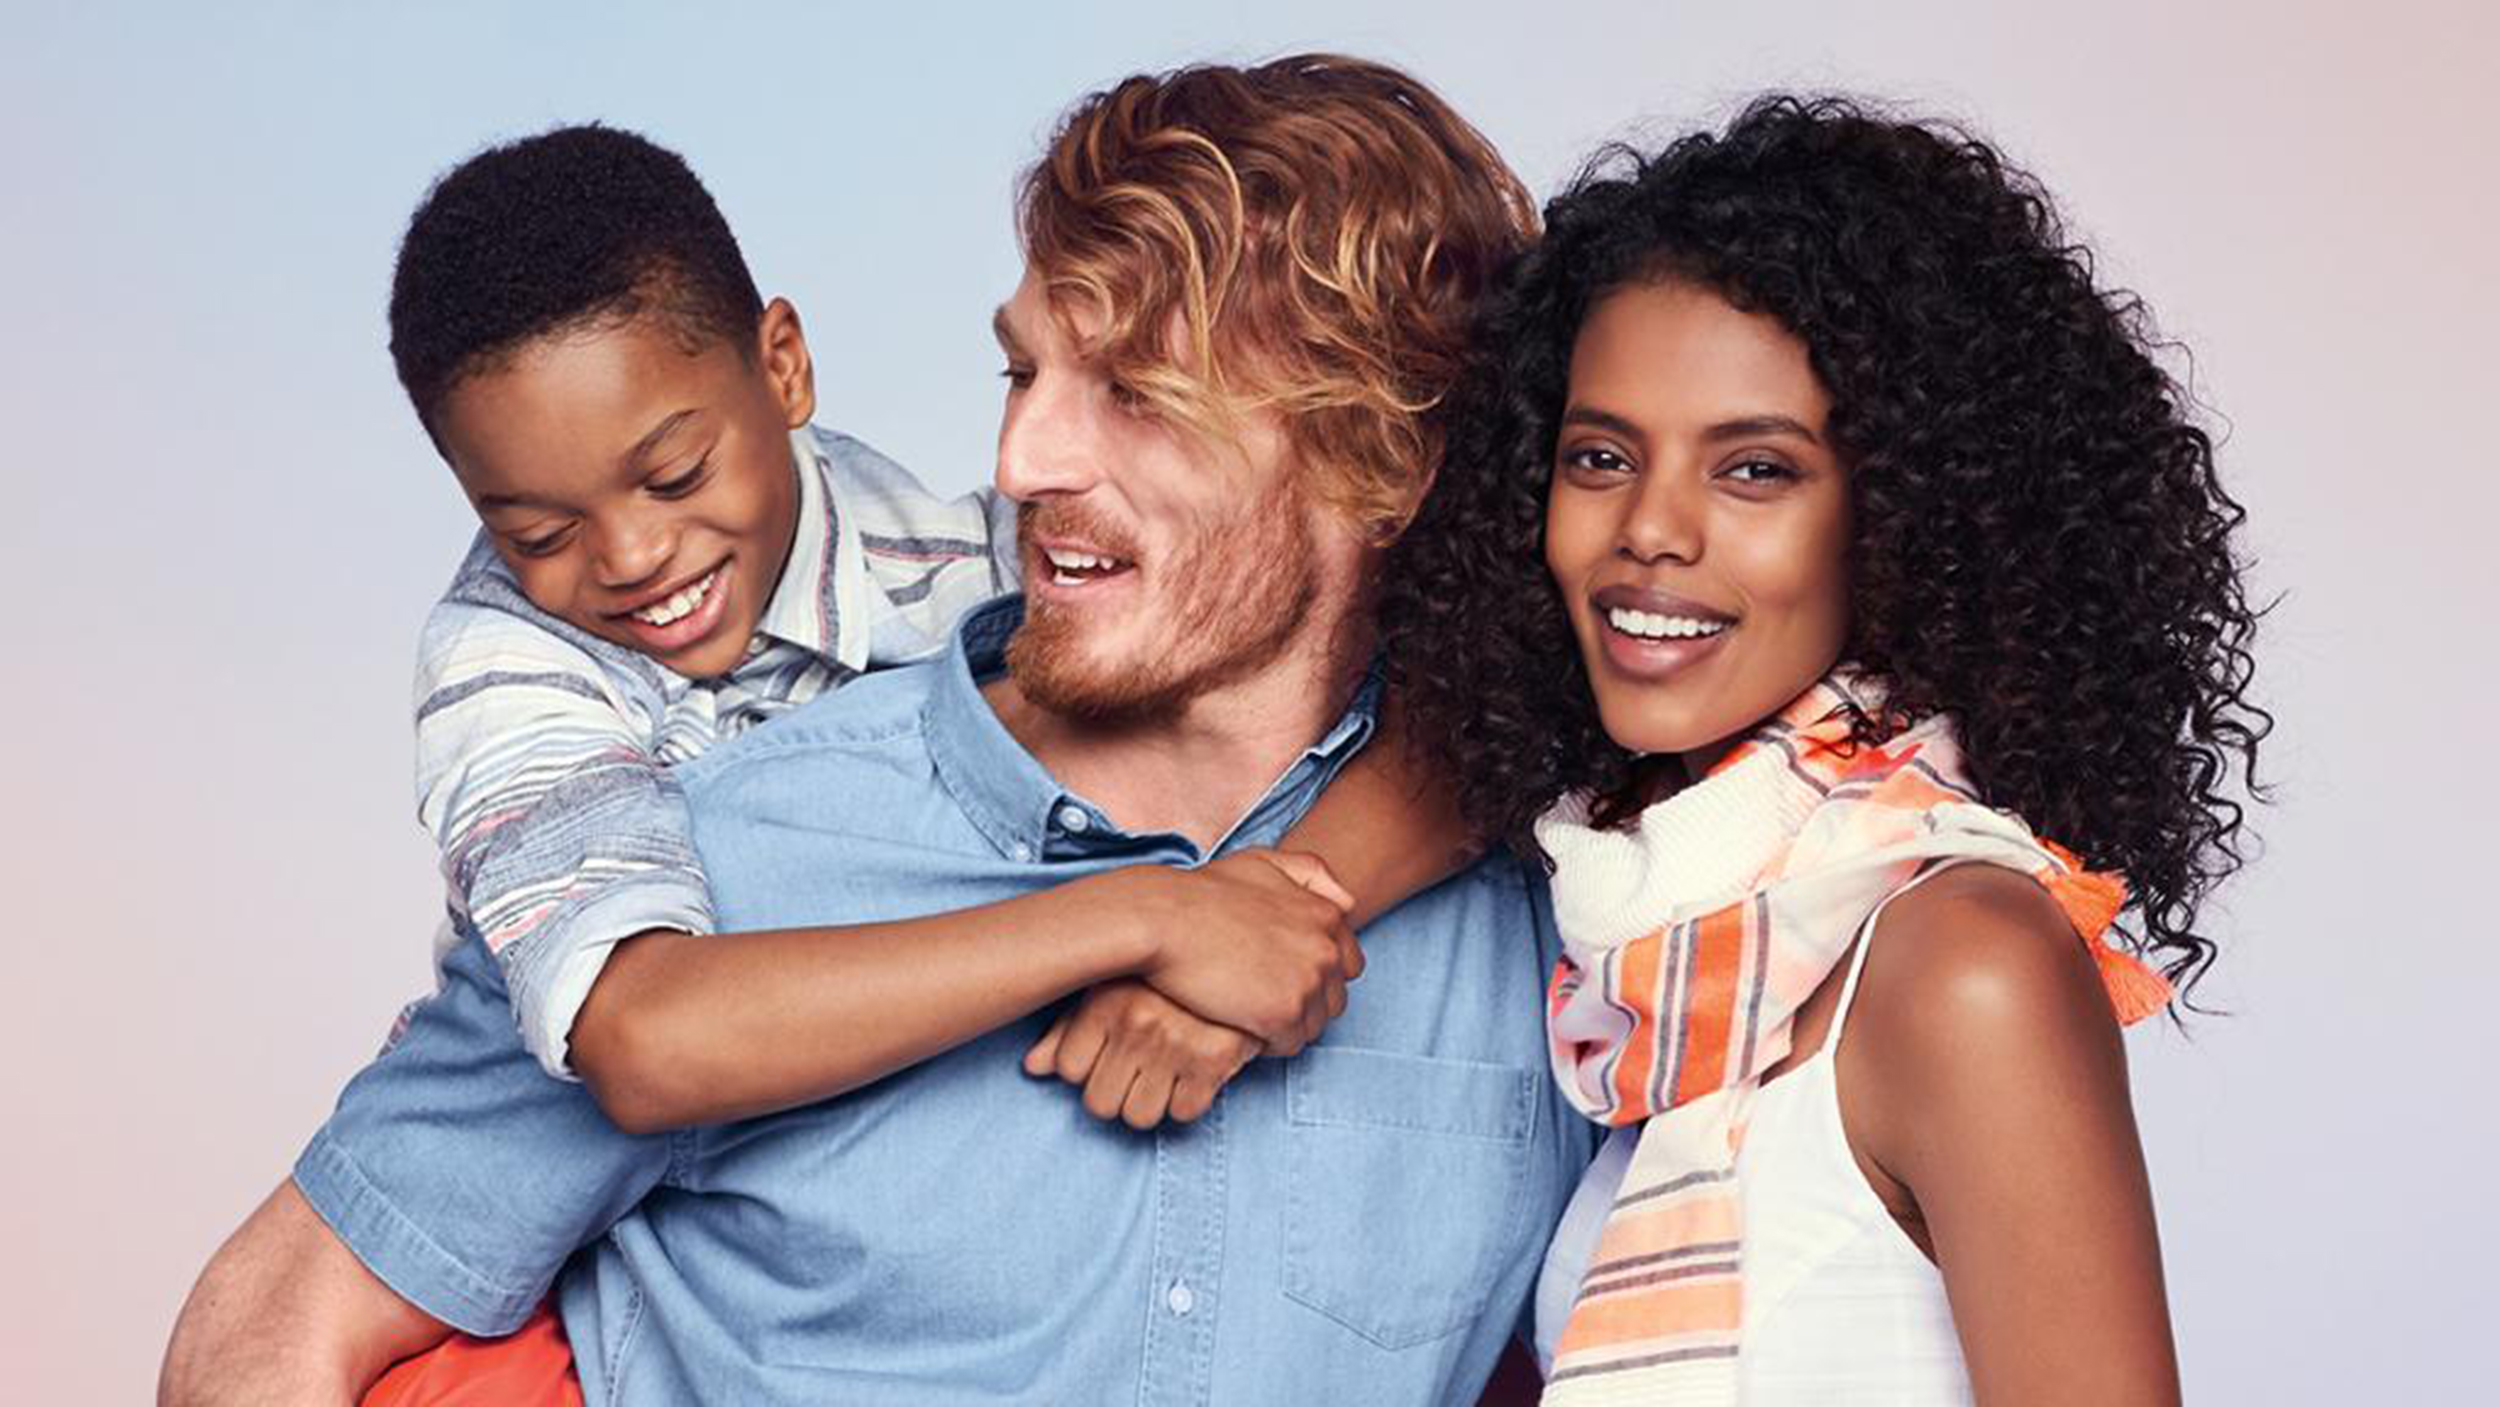 Old Navy ad with interracial family prompts social media outrage ...